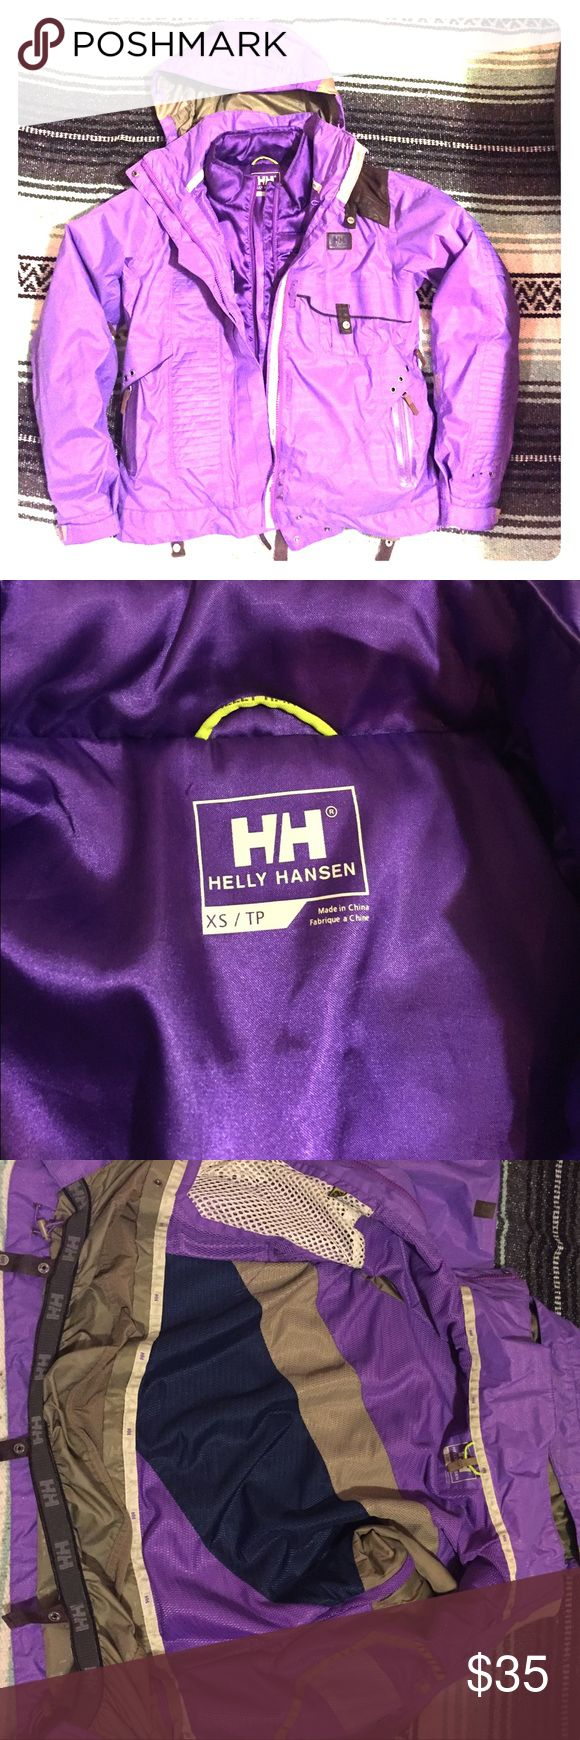 Purple Helly Hansen snowboard jacket! Helly Hansen 3-in-1 snowboard jacket. Showing signs of wear on faux leather and has seen a lot of snow. Very warm and comfortable. This item is cross listed. Offers welcome! Helly Hansen Jackets & Coats Puffers